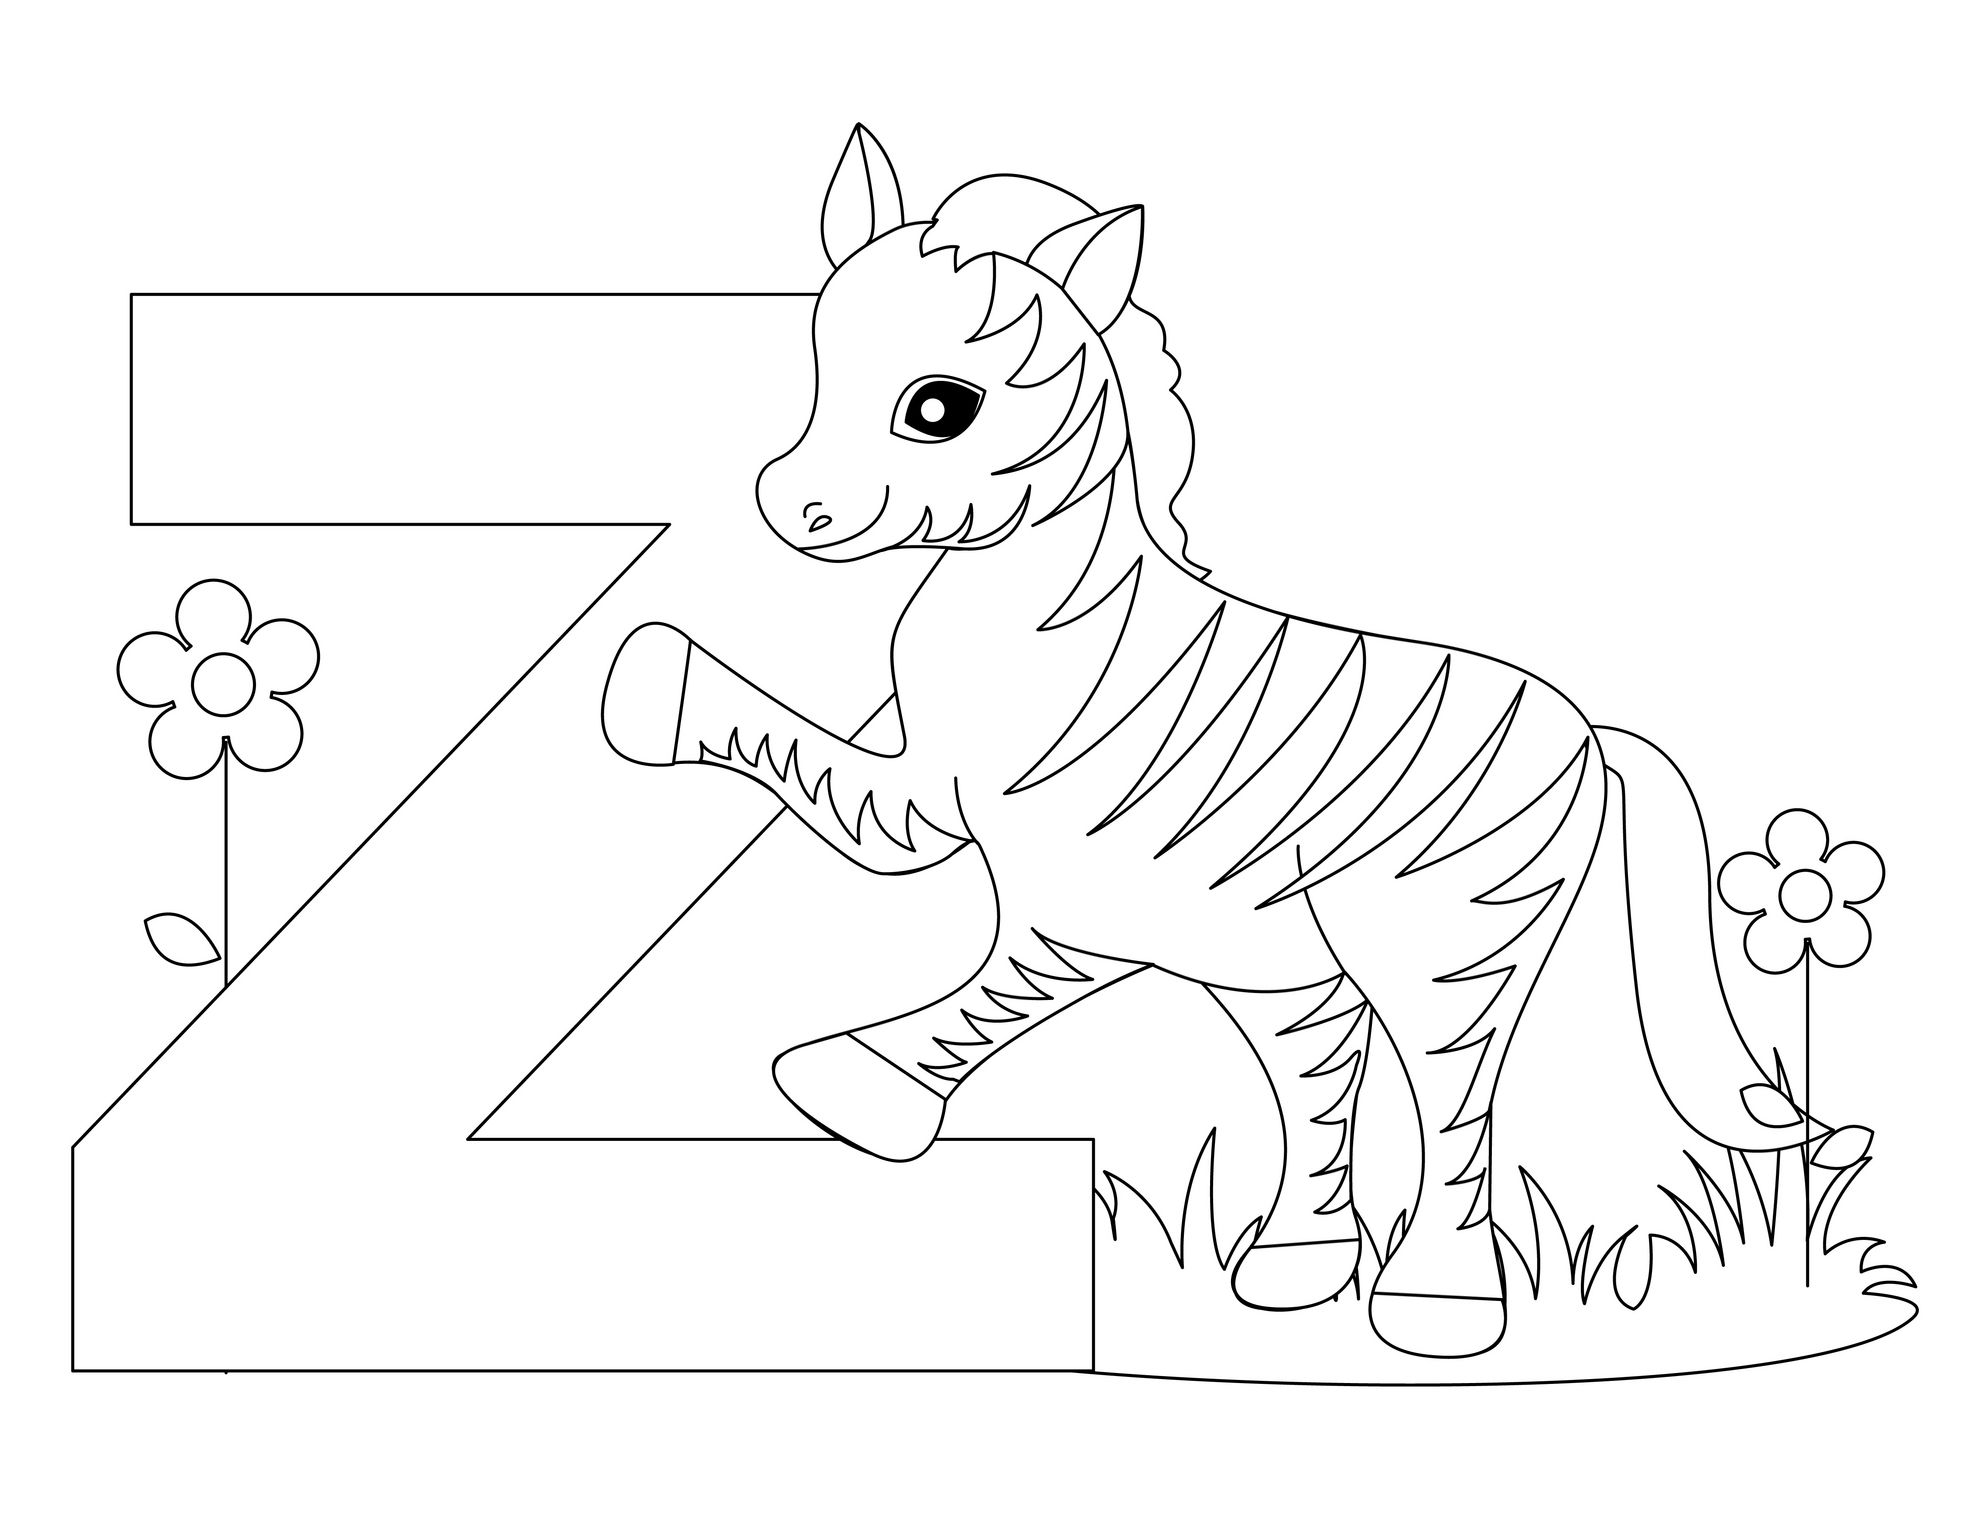 Alphabet i coloring pages - Animal Alphabet Letter Z For Zebra